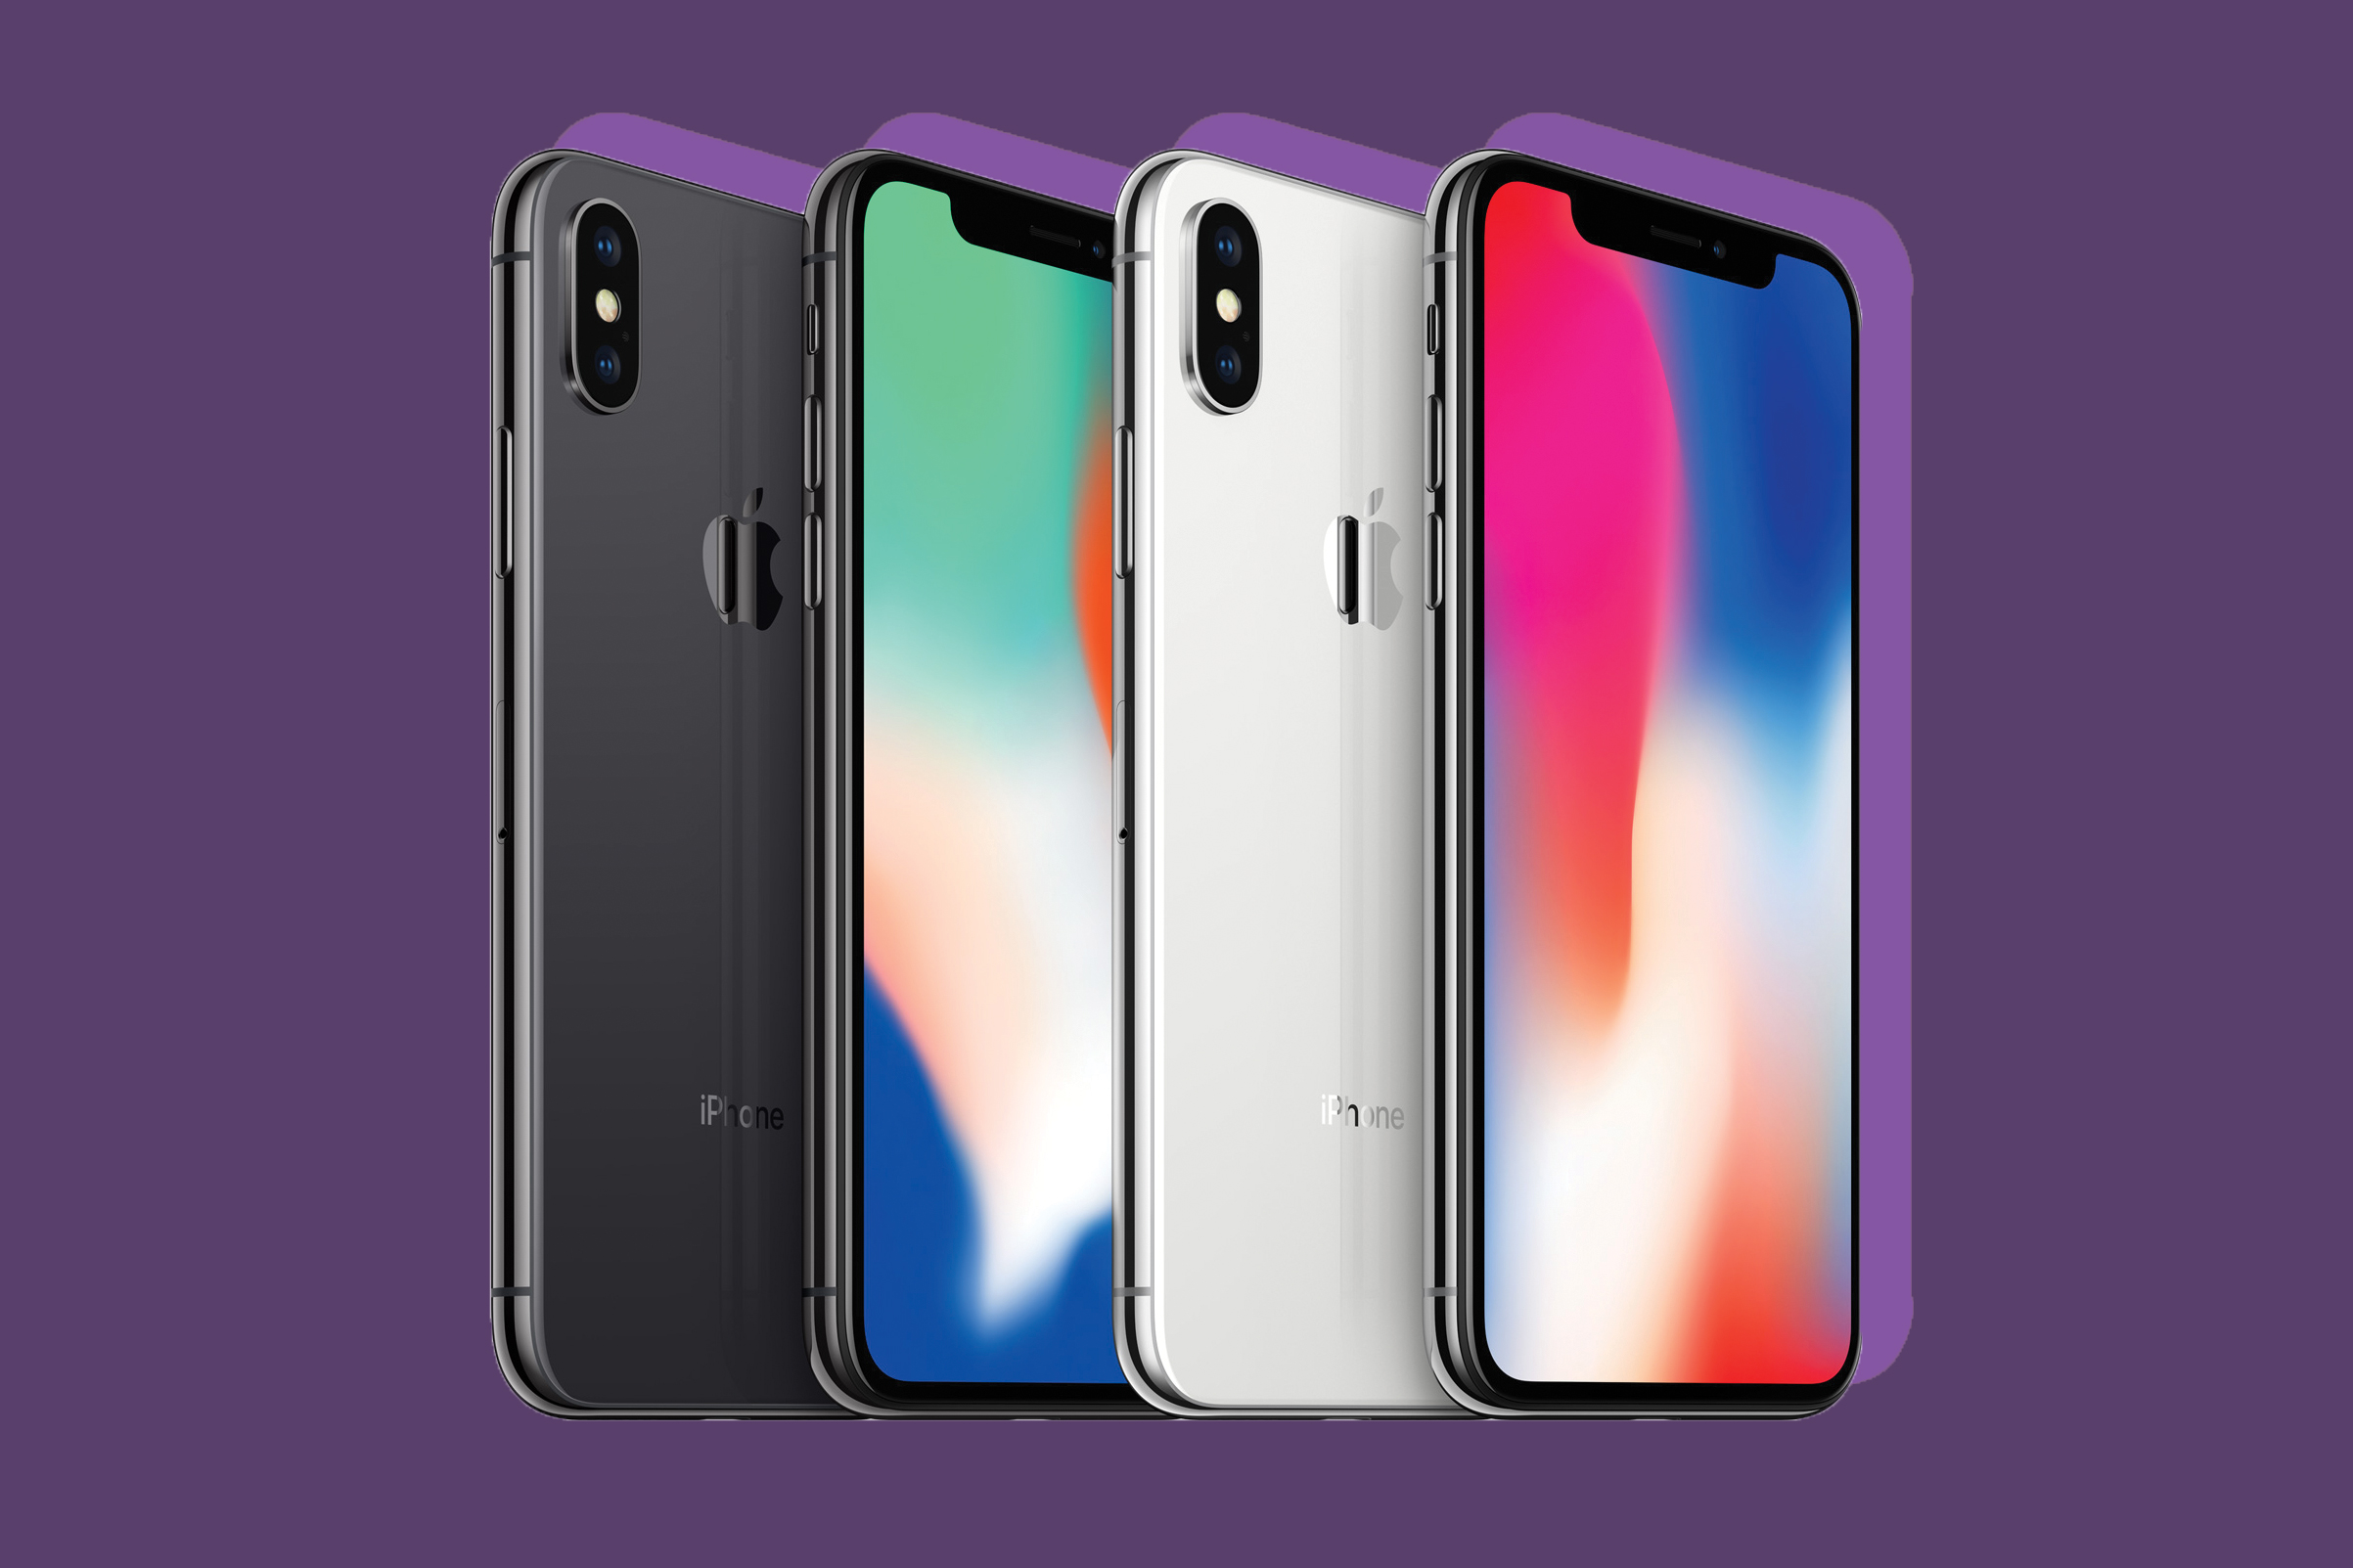 Apple iPhone Black Friday 2019 Deals